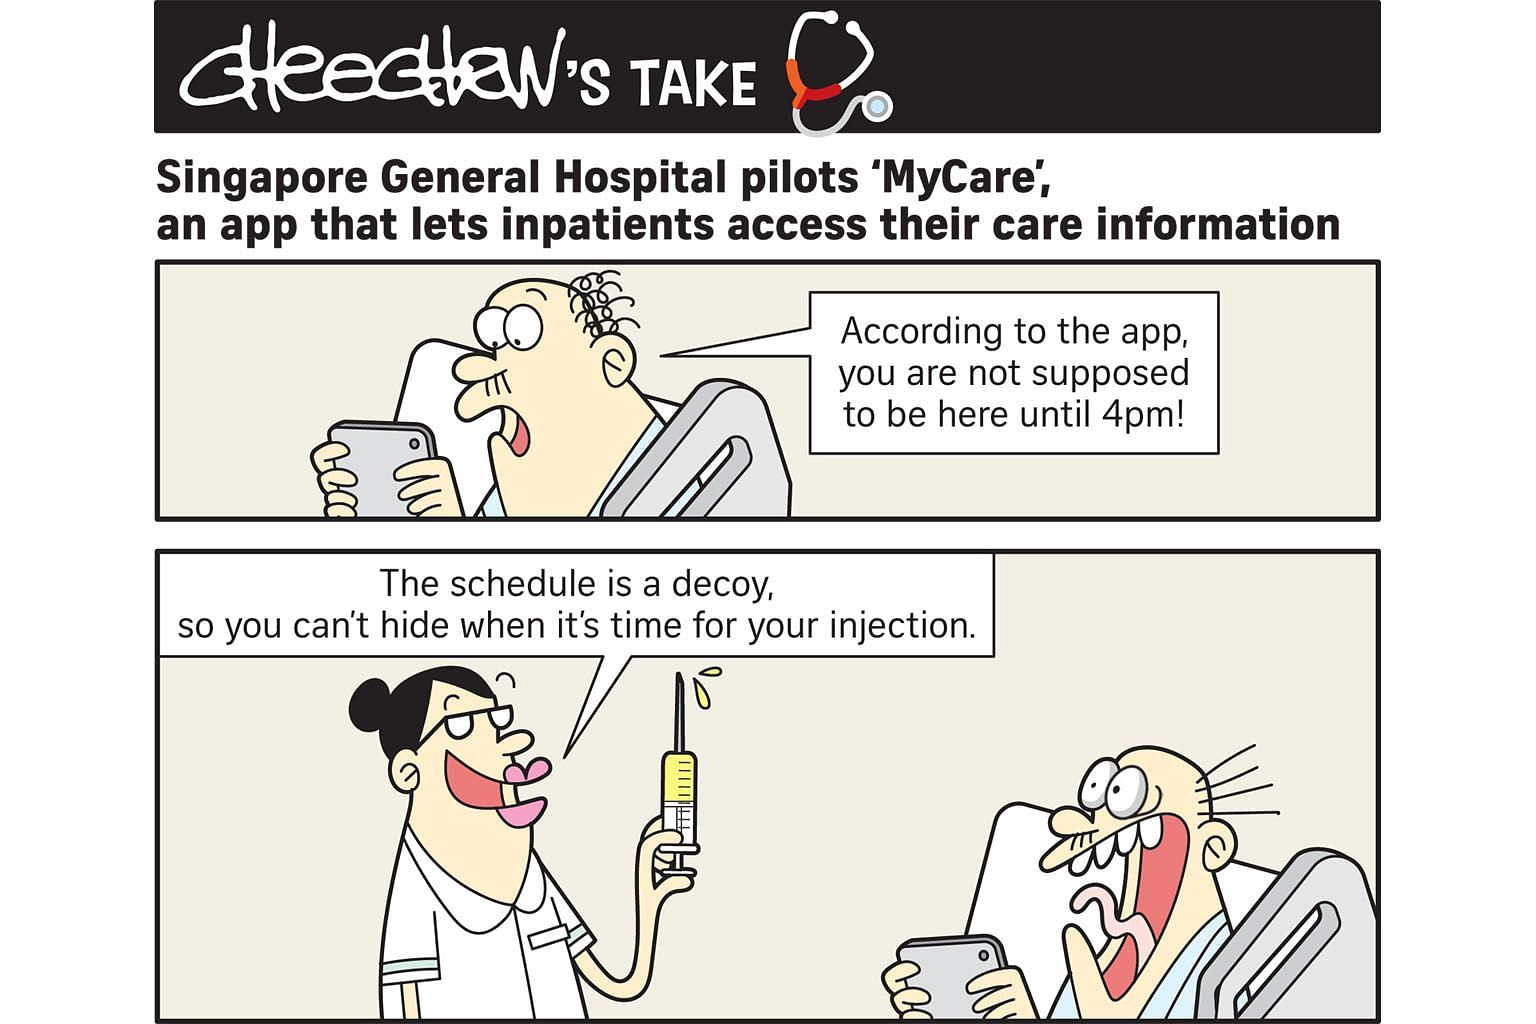 Latest Cartoons News & Headlines, Top Stories Today - The Straits Times